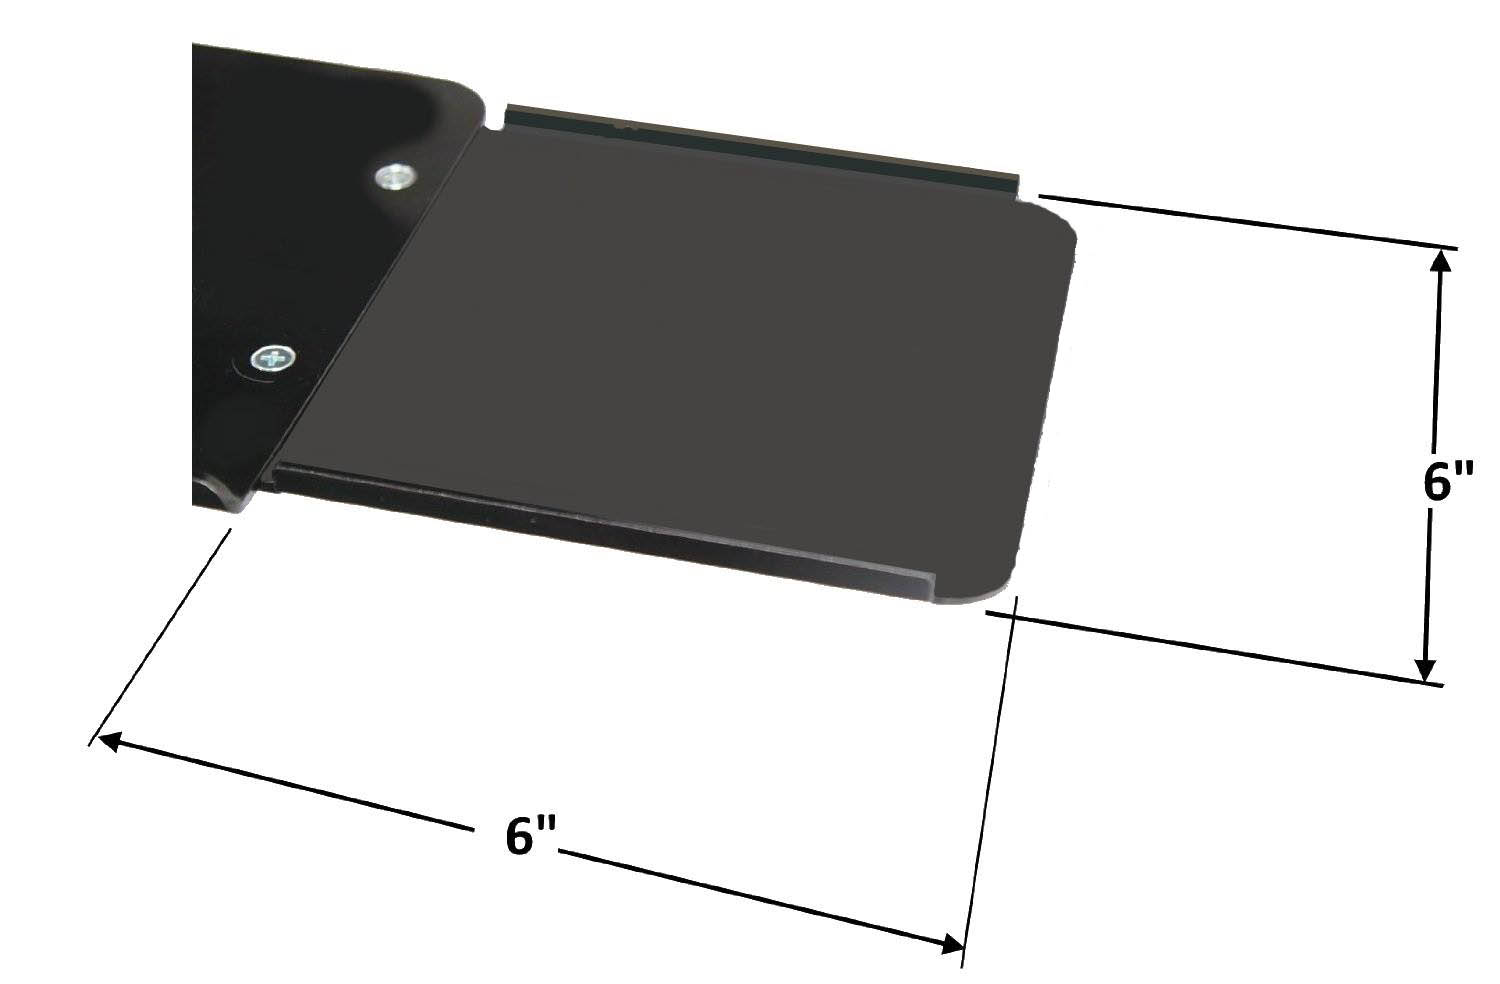 VESA Mount Mouse Extension Tray